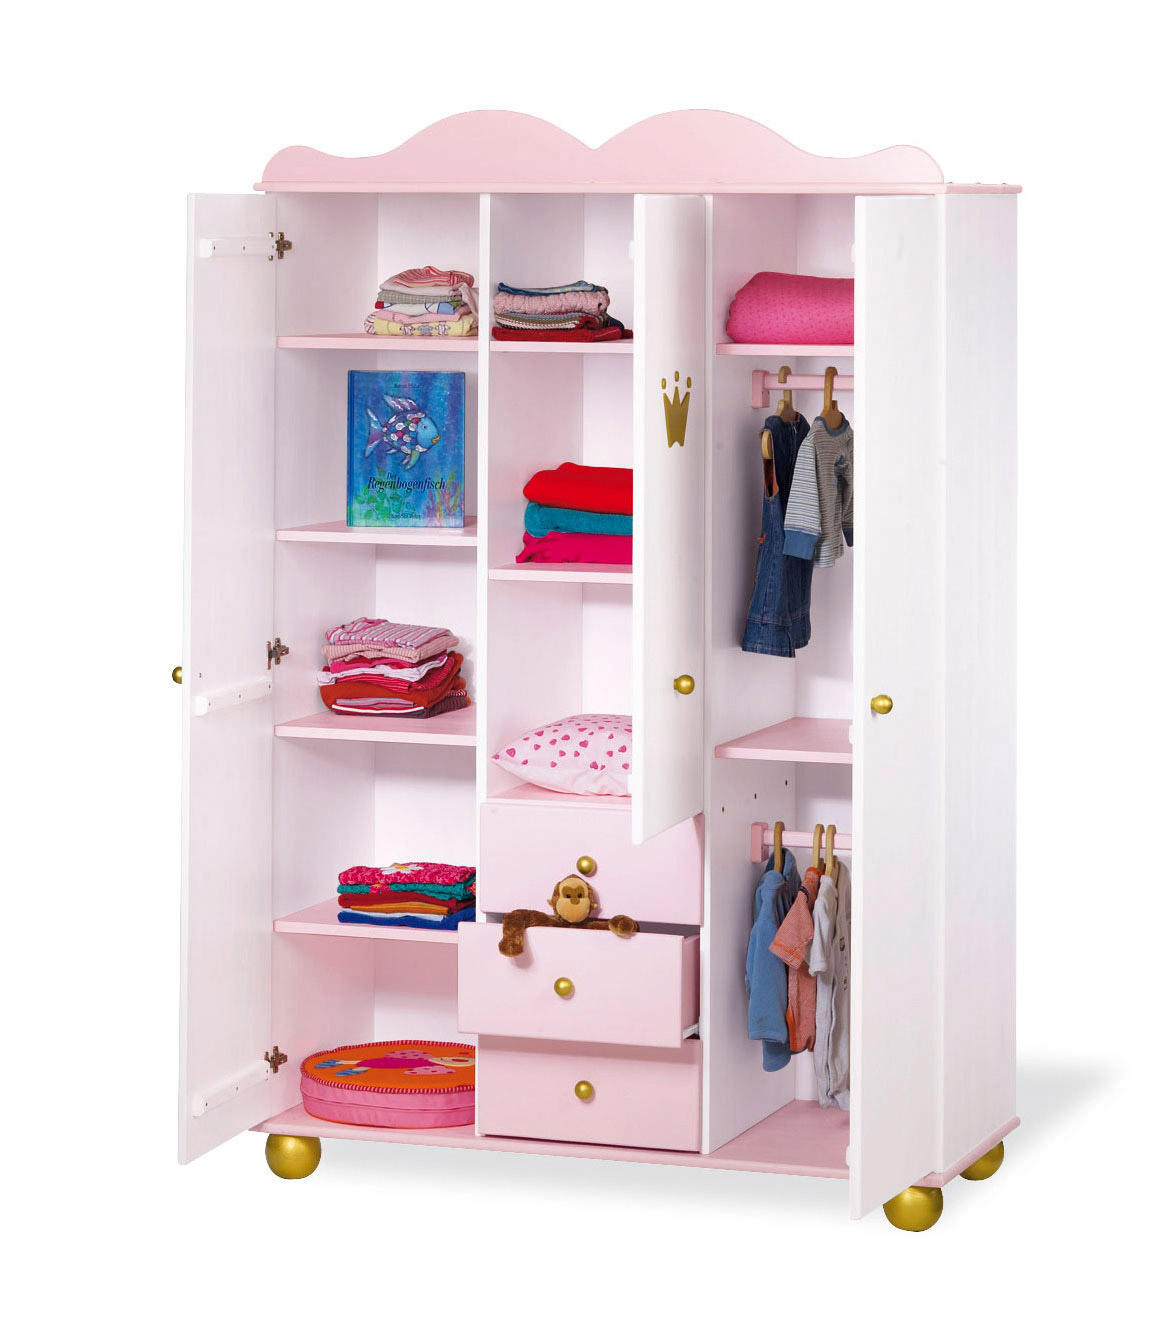 kinder kleiderschrank in rosa g nstig kaufen prinzessin karolin. Black Bedroom Furniture Sets. Home Design Ideas